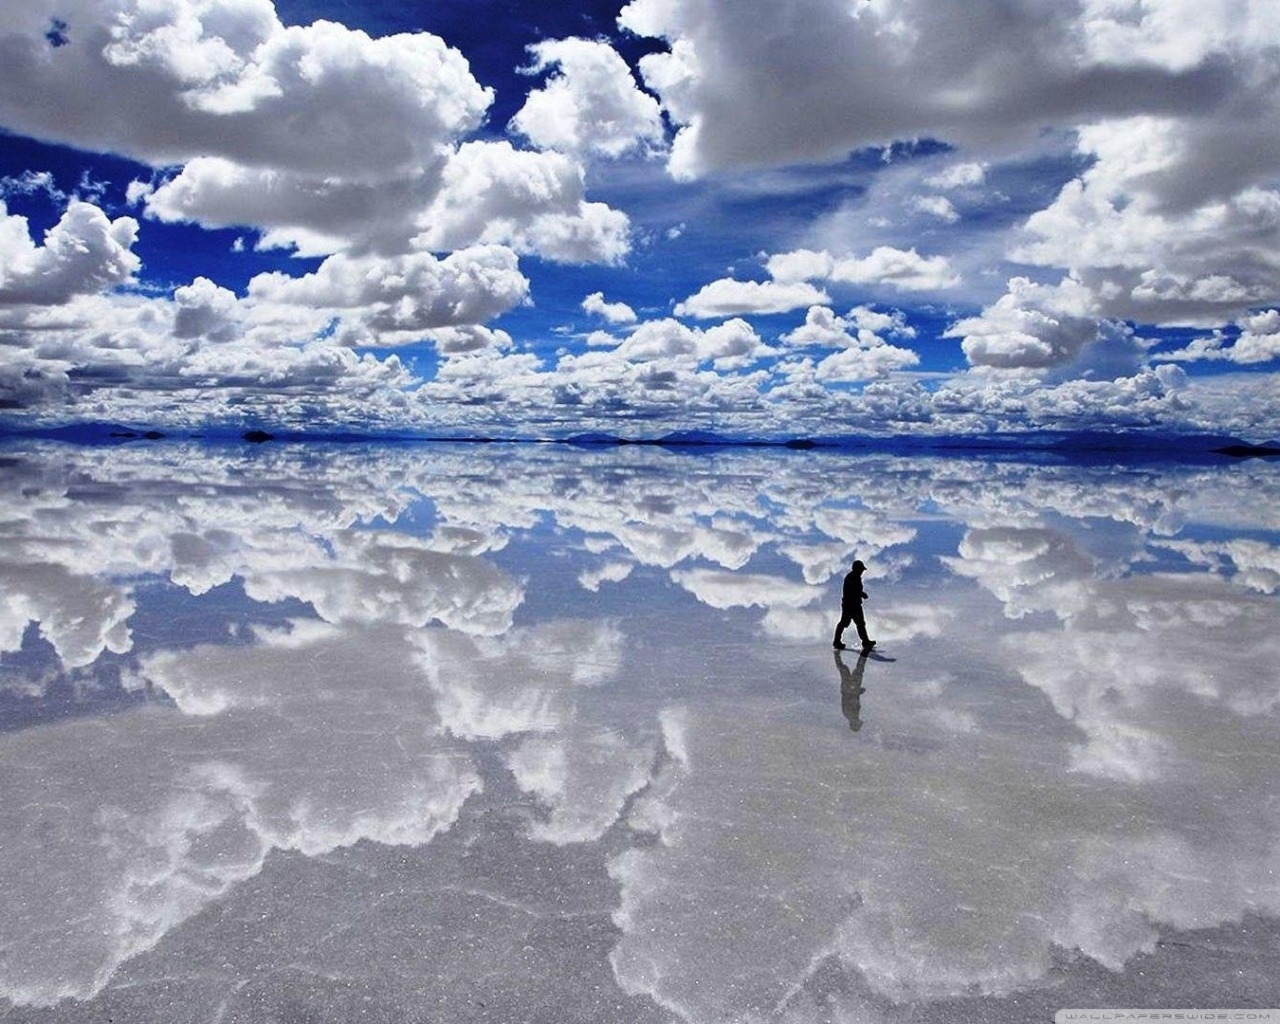 Salar de Uyuni Bolivia 4K HD Desktop Wallpaper for 4K Ultra HD 1280x1024